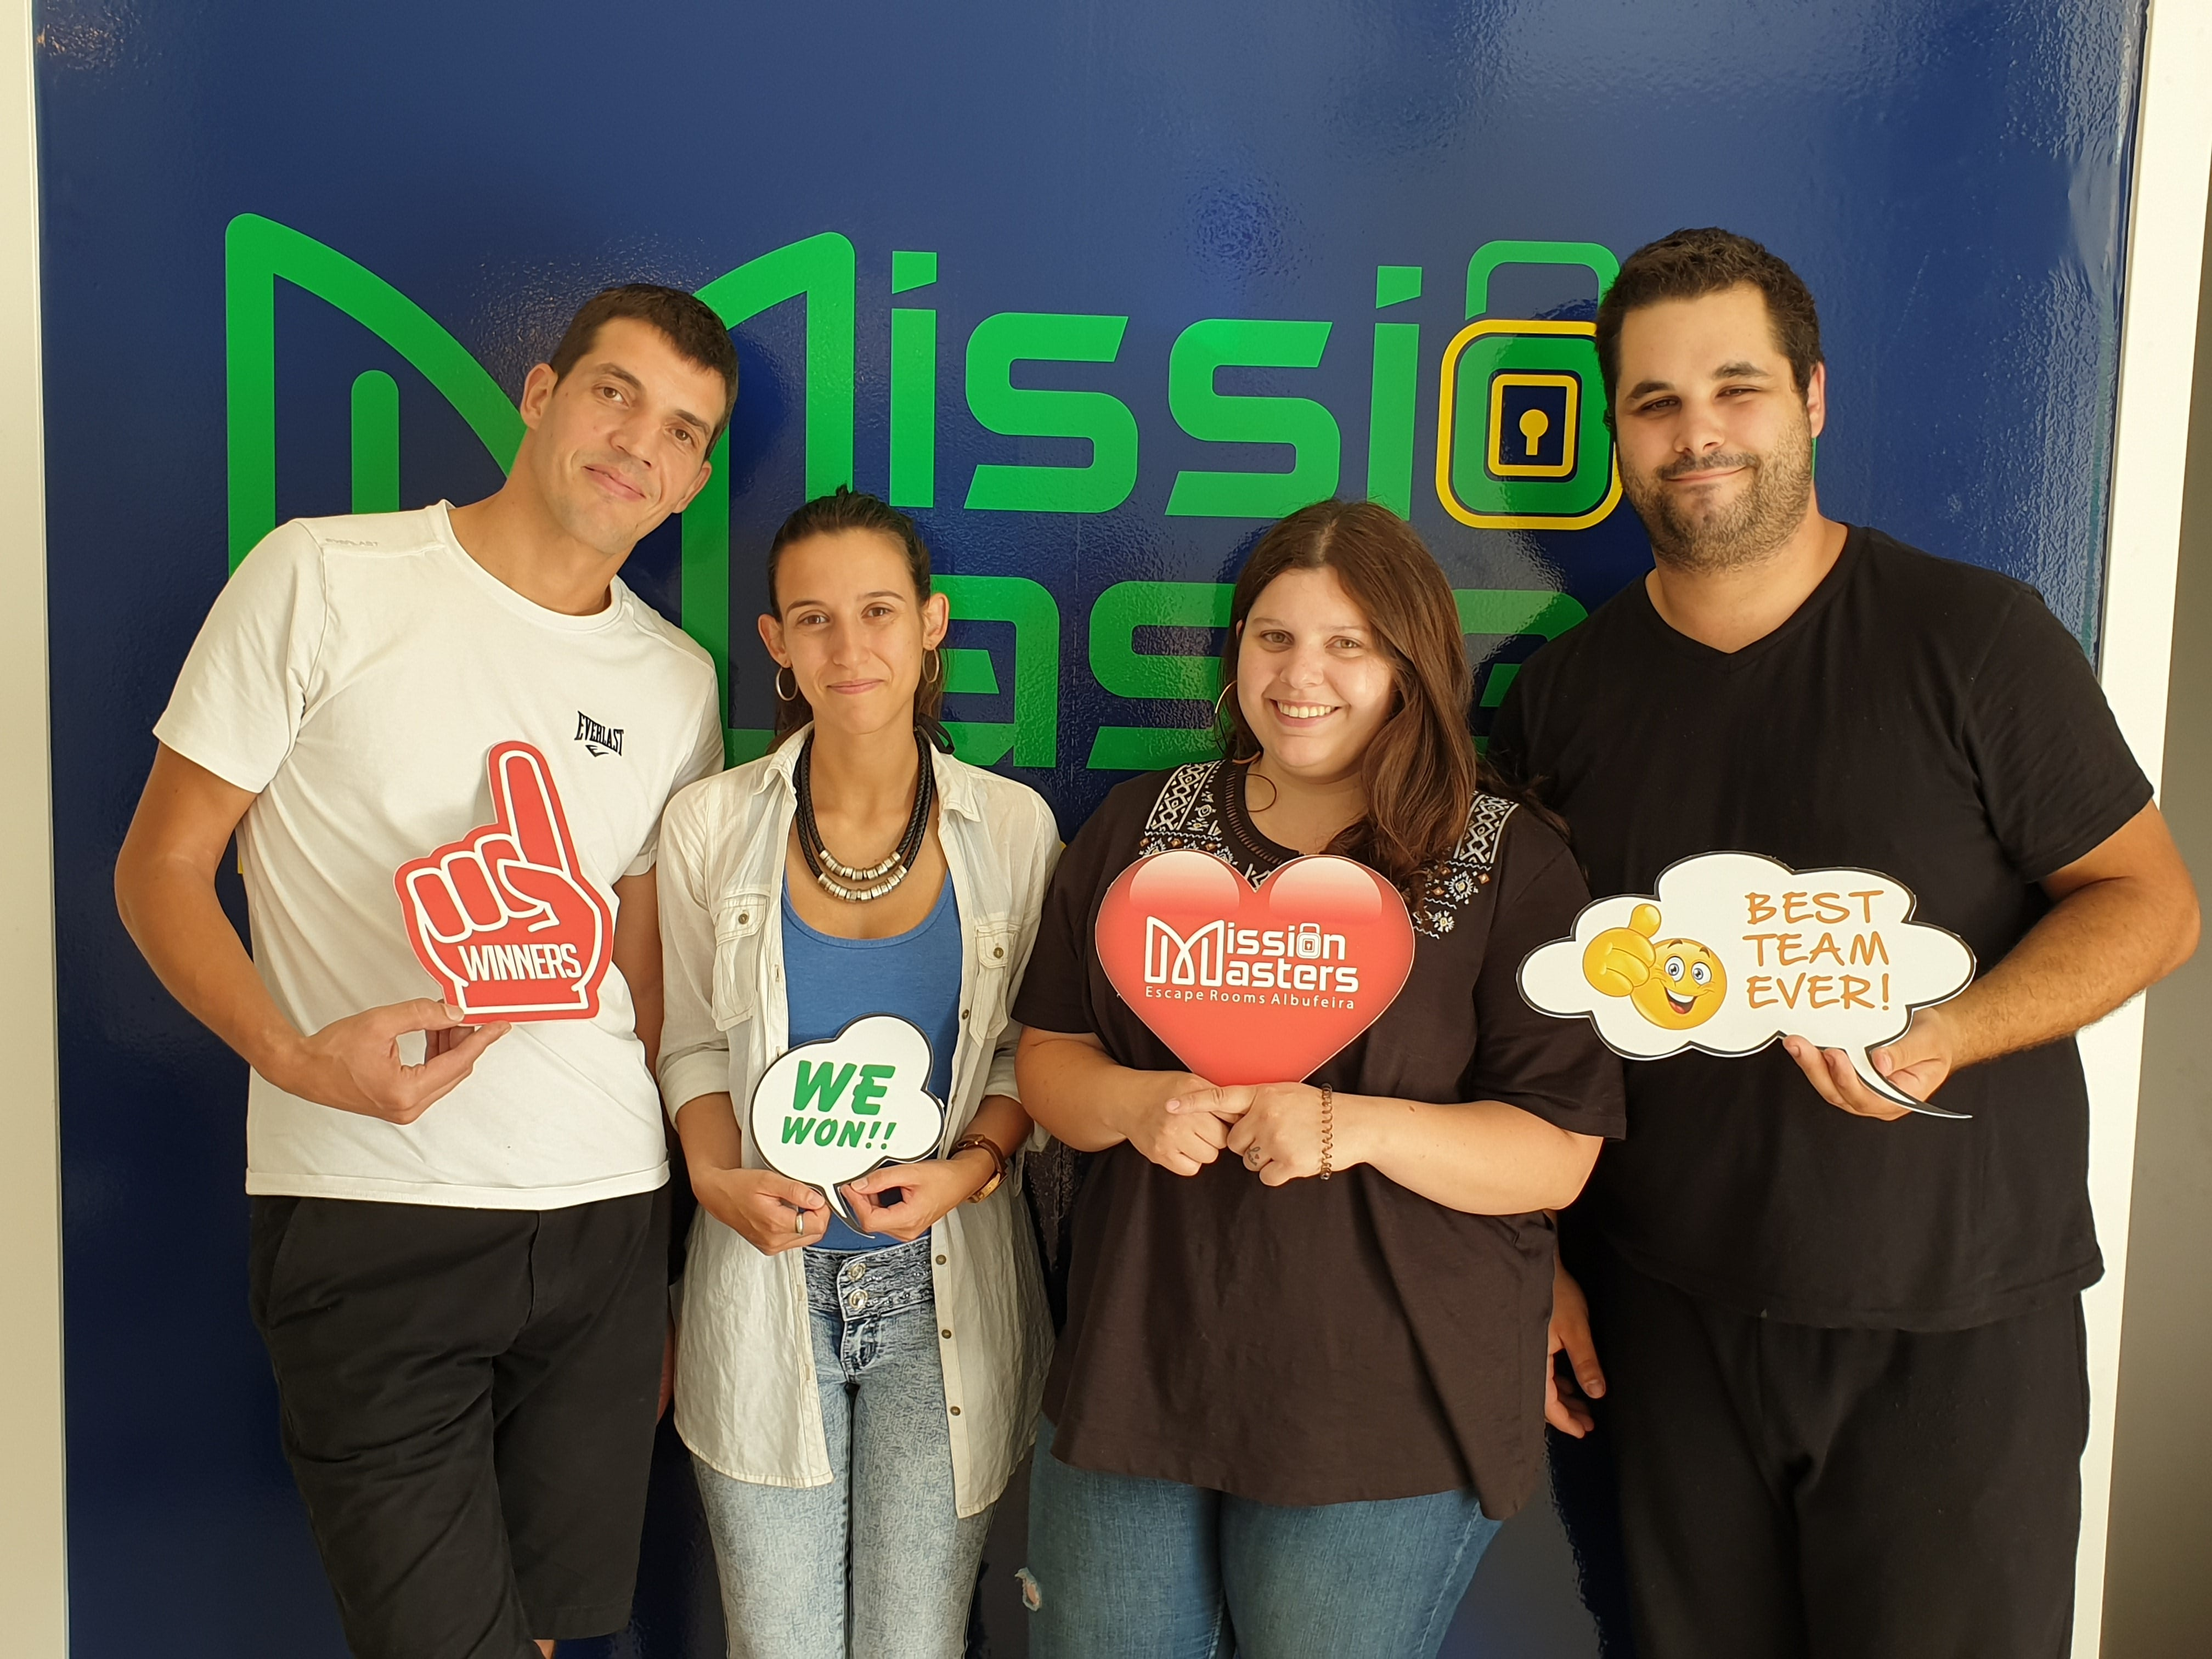 Mission Masters Escape Rooms Albufeira